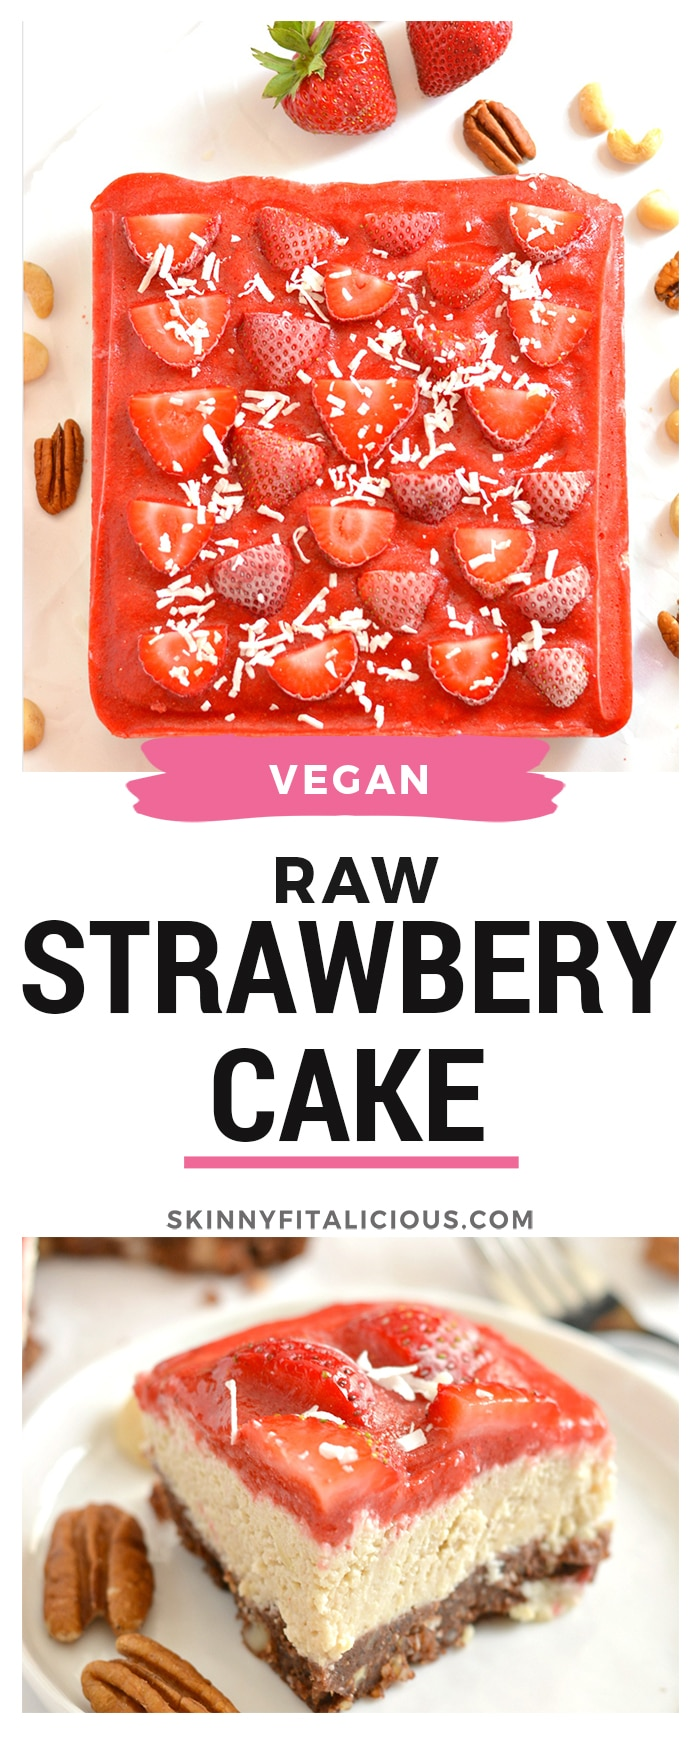 Raw Strawberry Cake is a nutrition powerhouse! Made with a cocoa macadamia pecan crust, creamycashew filling and topped with a strawberry sauce, this is adessert you cannot resist. Vegan, Paleo, gluten free, grain free & dairy free!